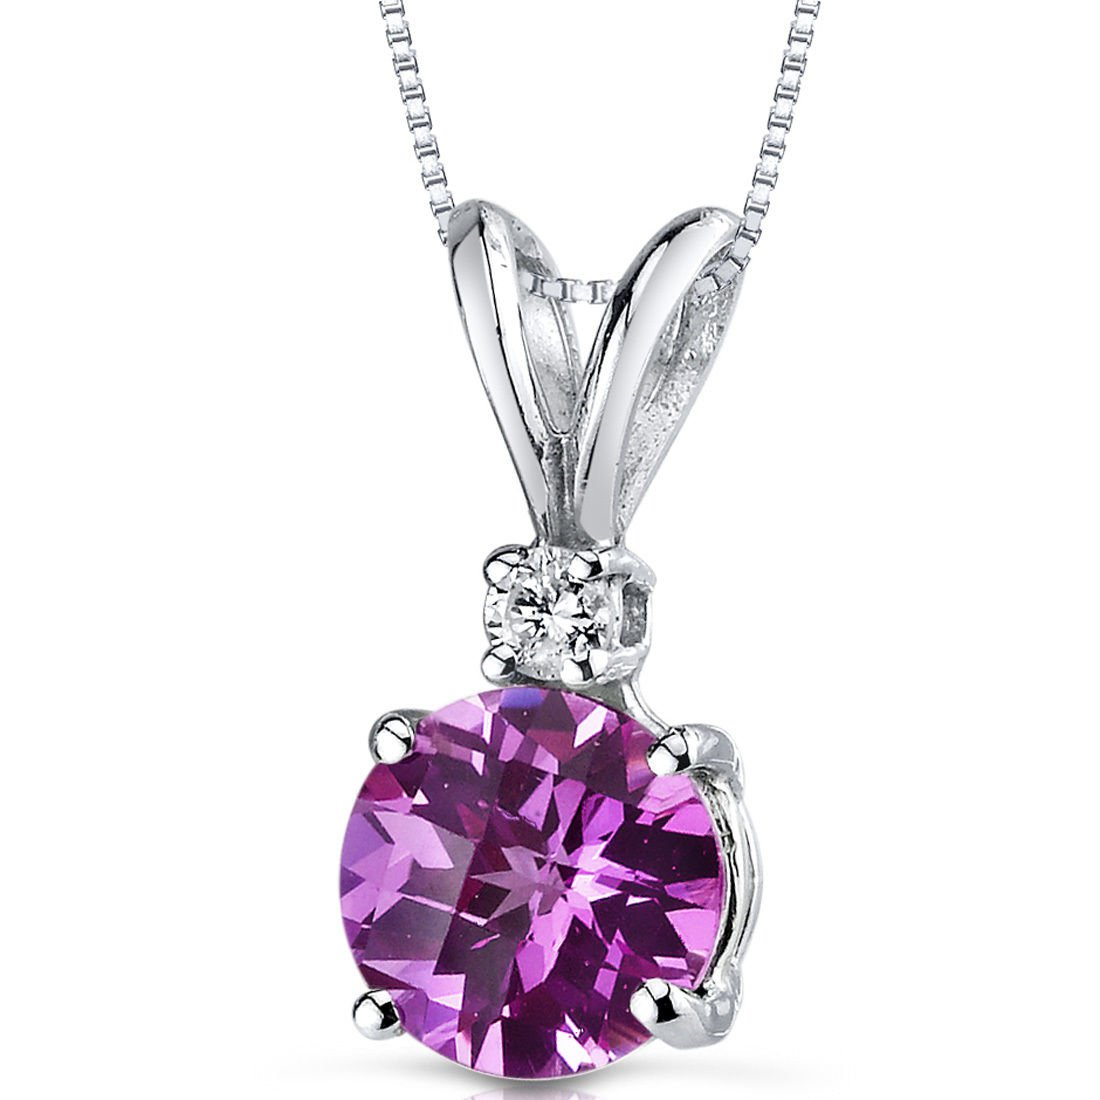 14k White Gold Round Pink Sapphire and Diamond Pendant Necklace